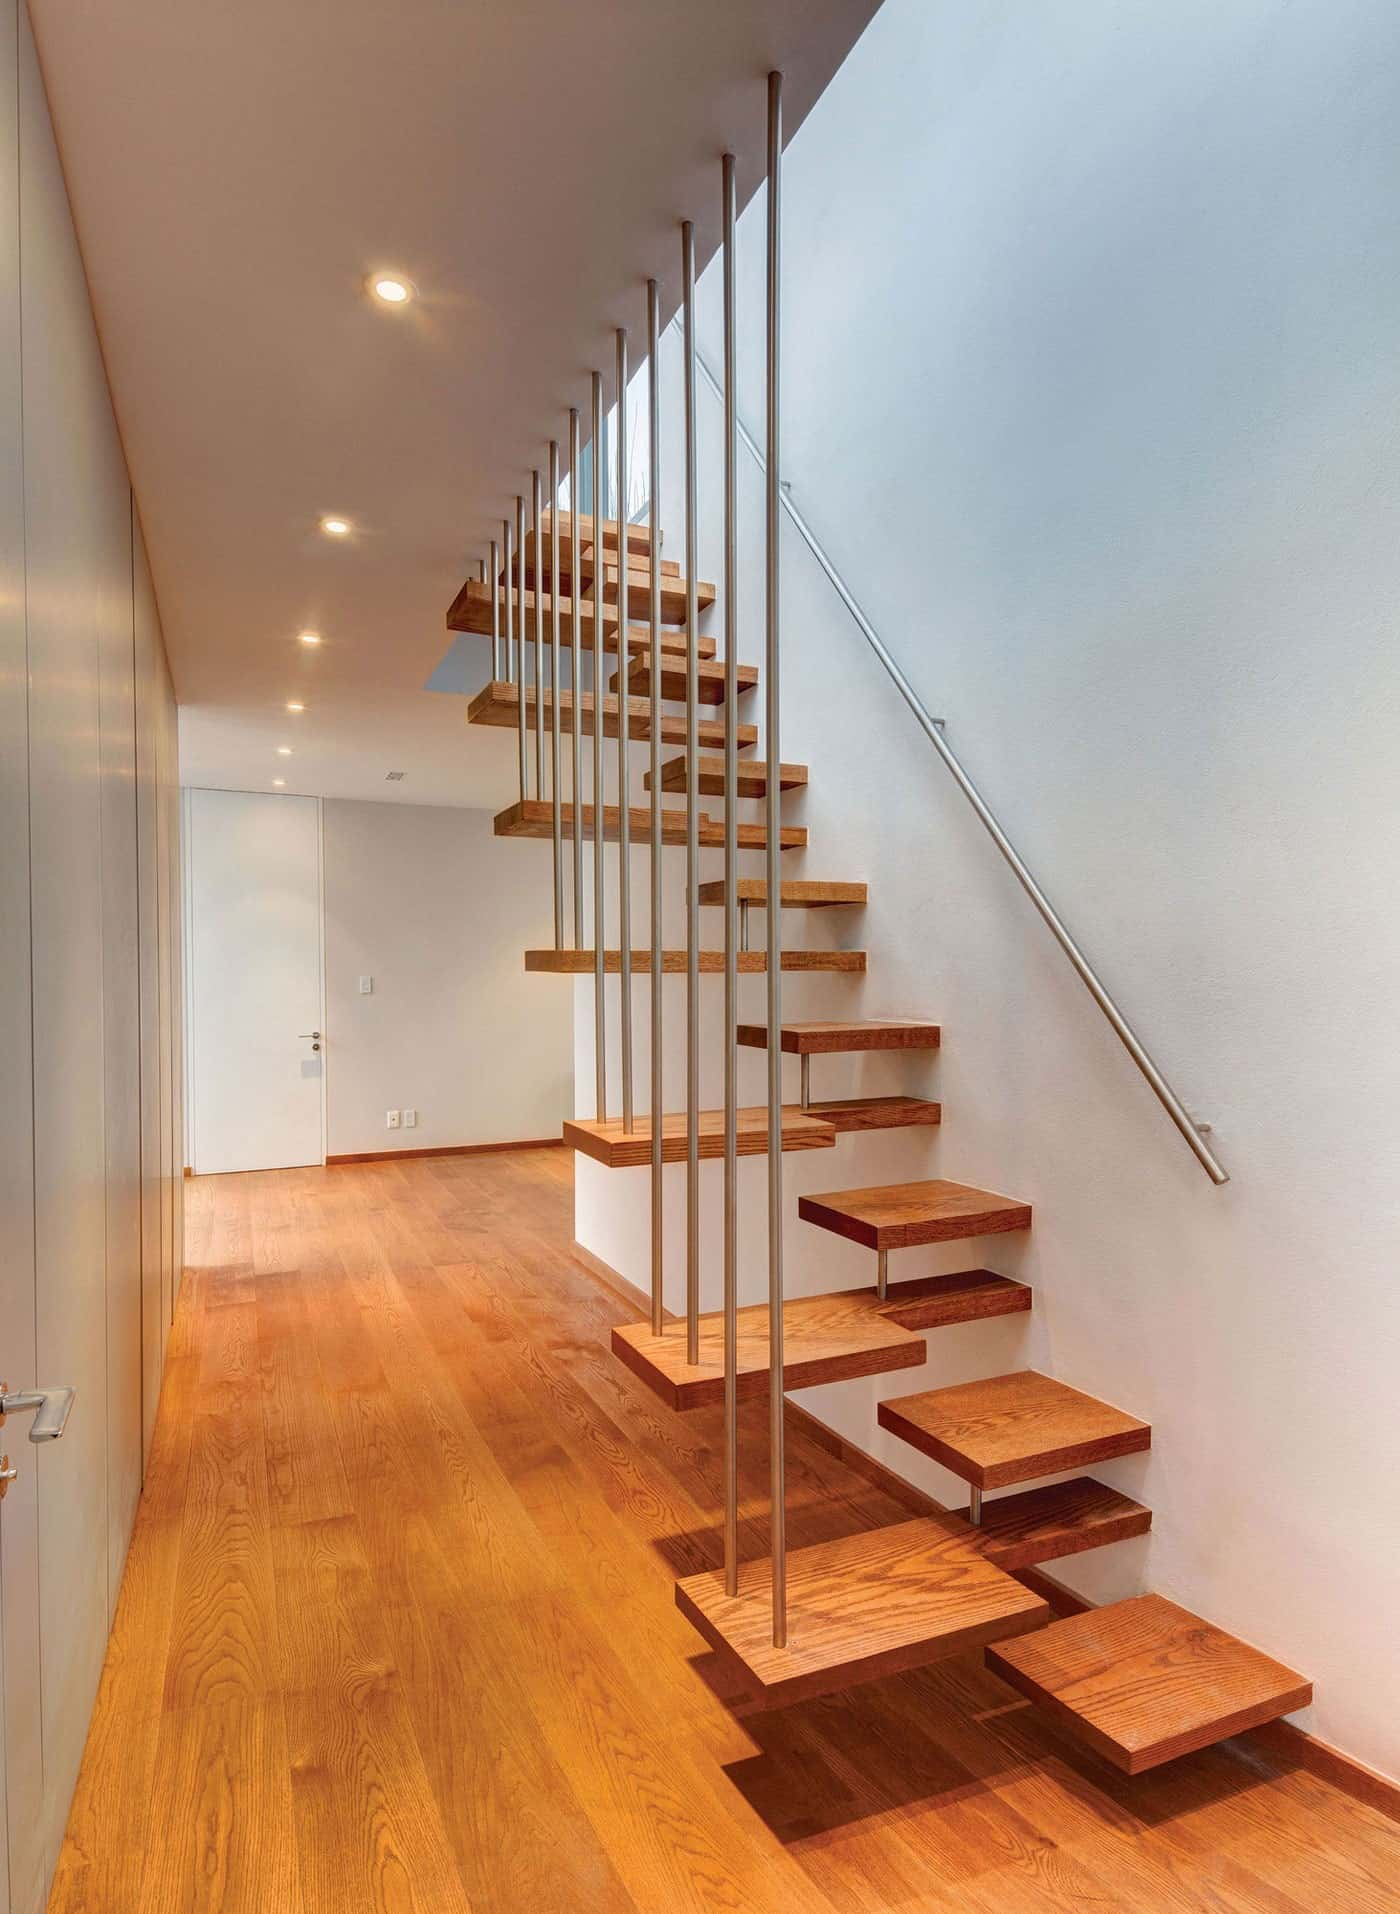 A Floating Wooden Staircase